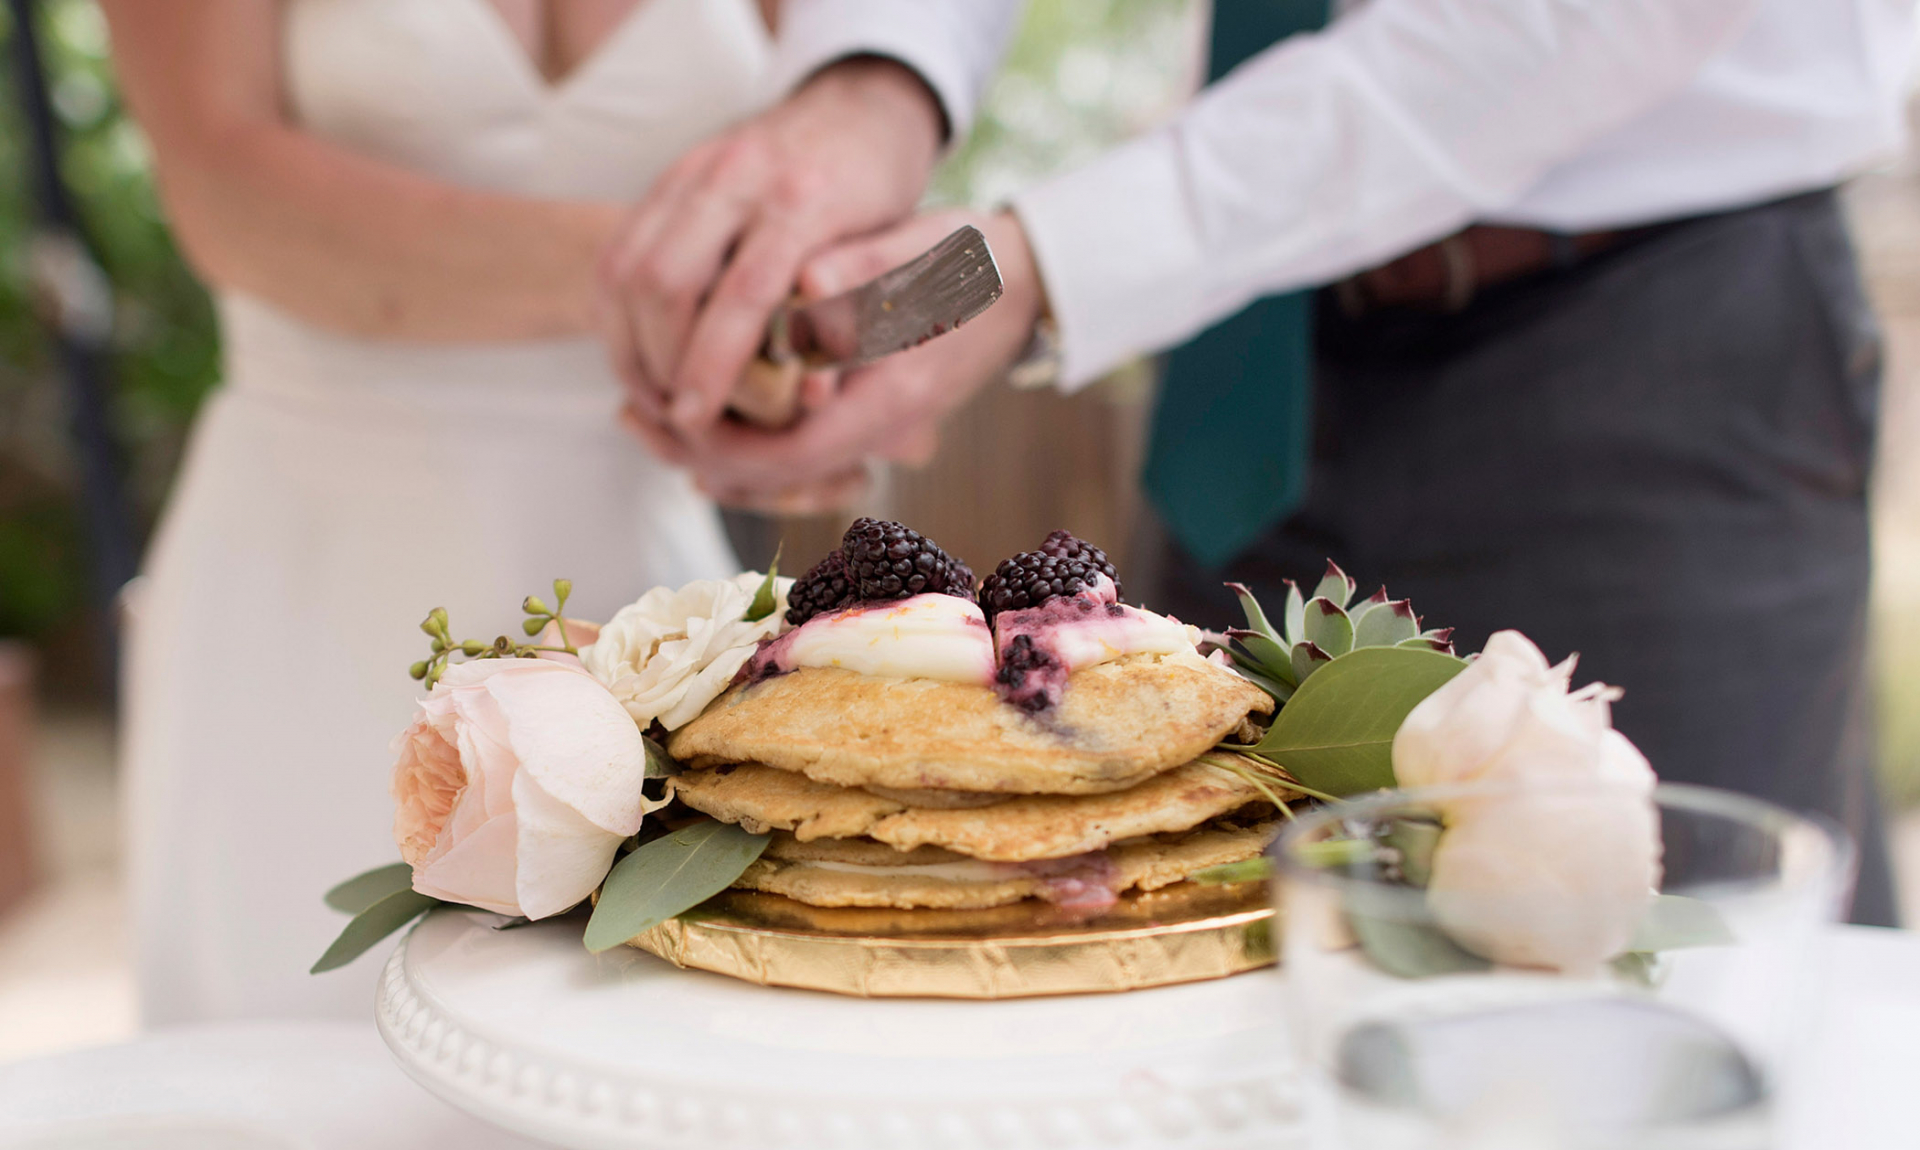 Scottsdale, AZ Elopement Cake Cutting Detail Image | This couple decided to take brunch seriously and cut into their pancake wedding cake